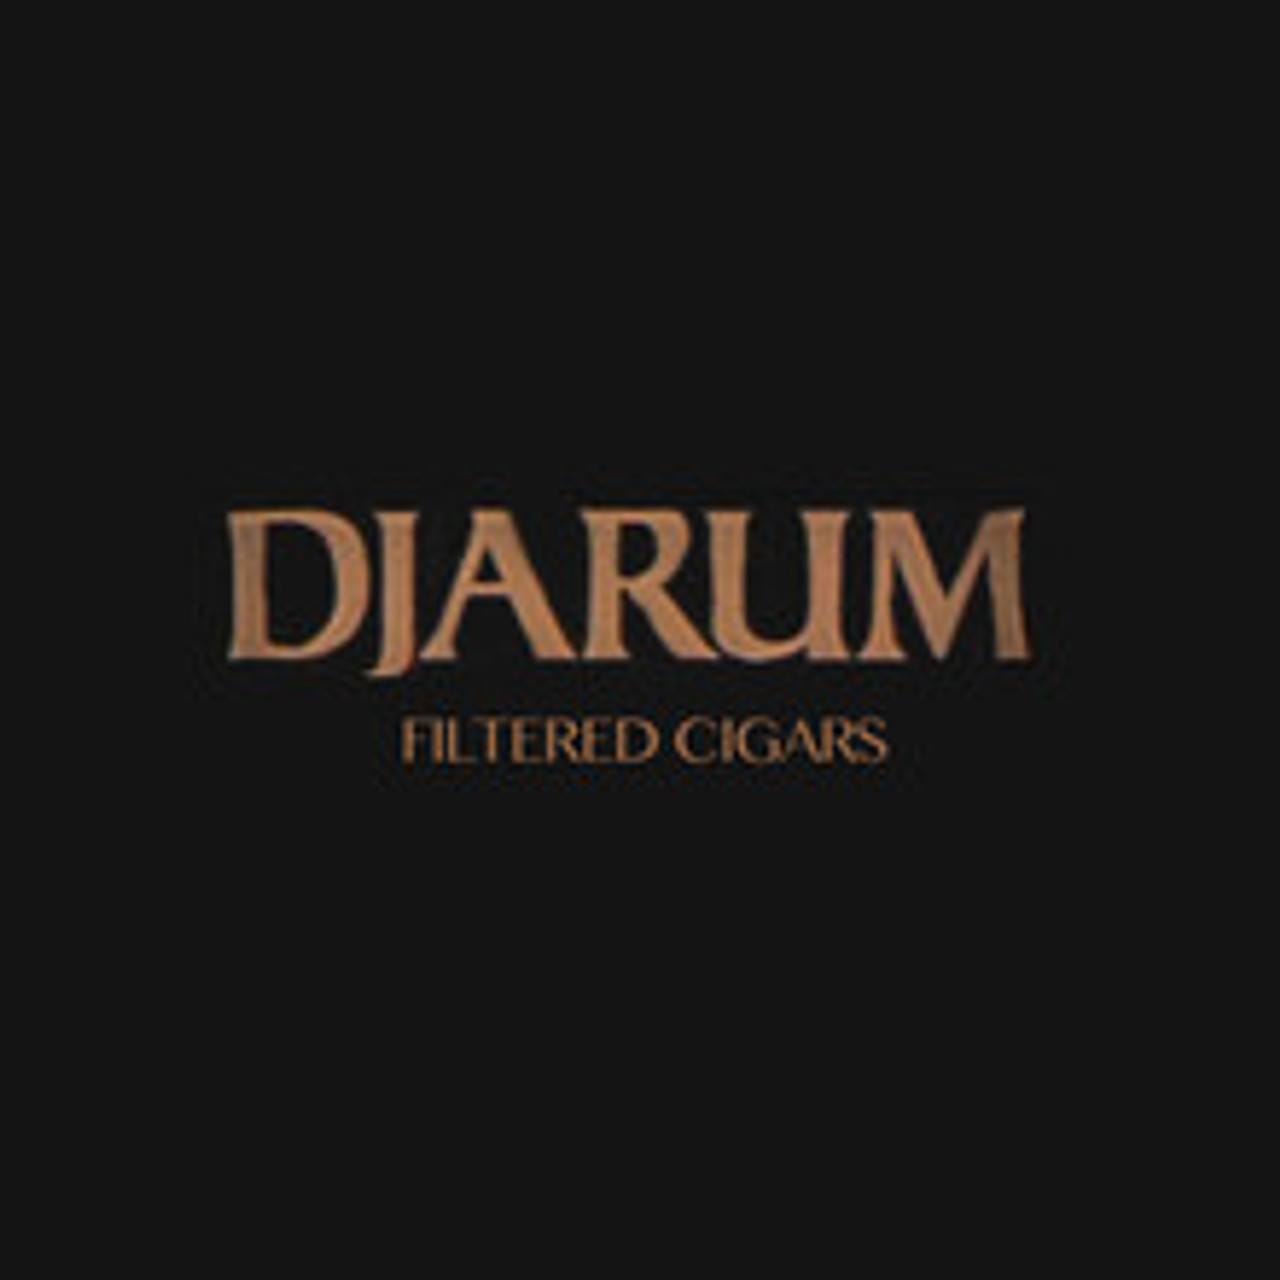 Djarum Filtered Ruby Black Cherry Cigars (10 Packs of 12) - Maduro